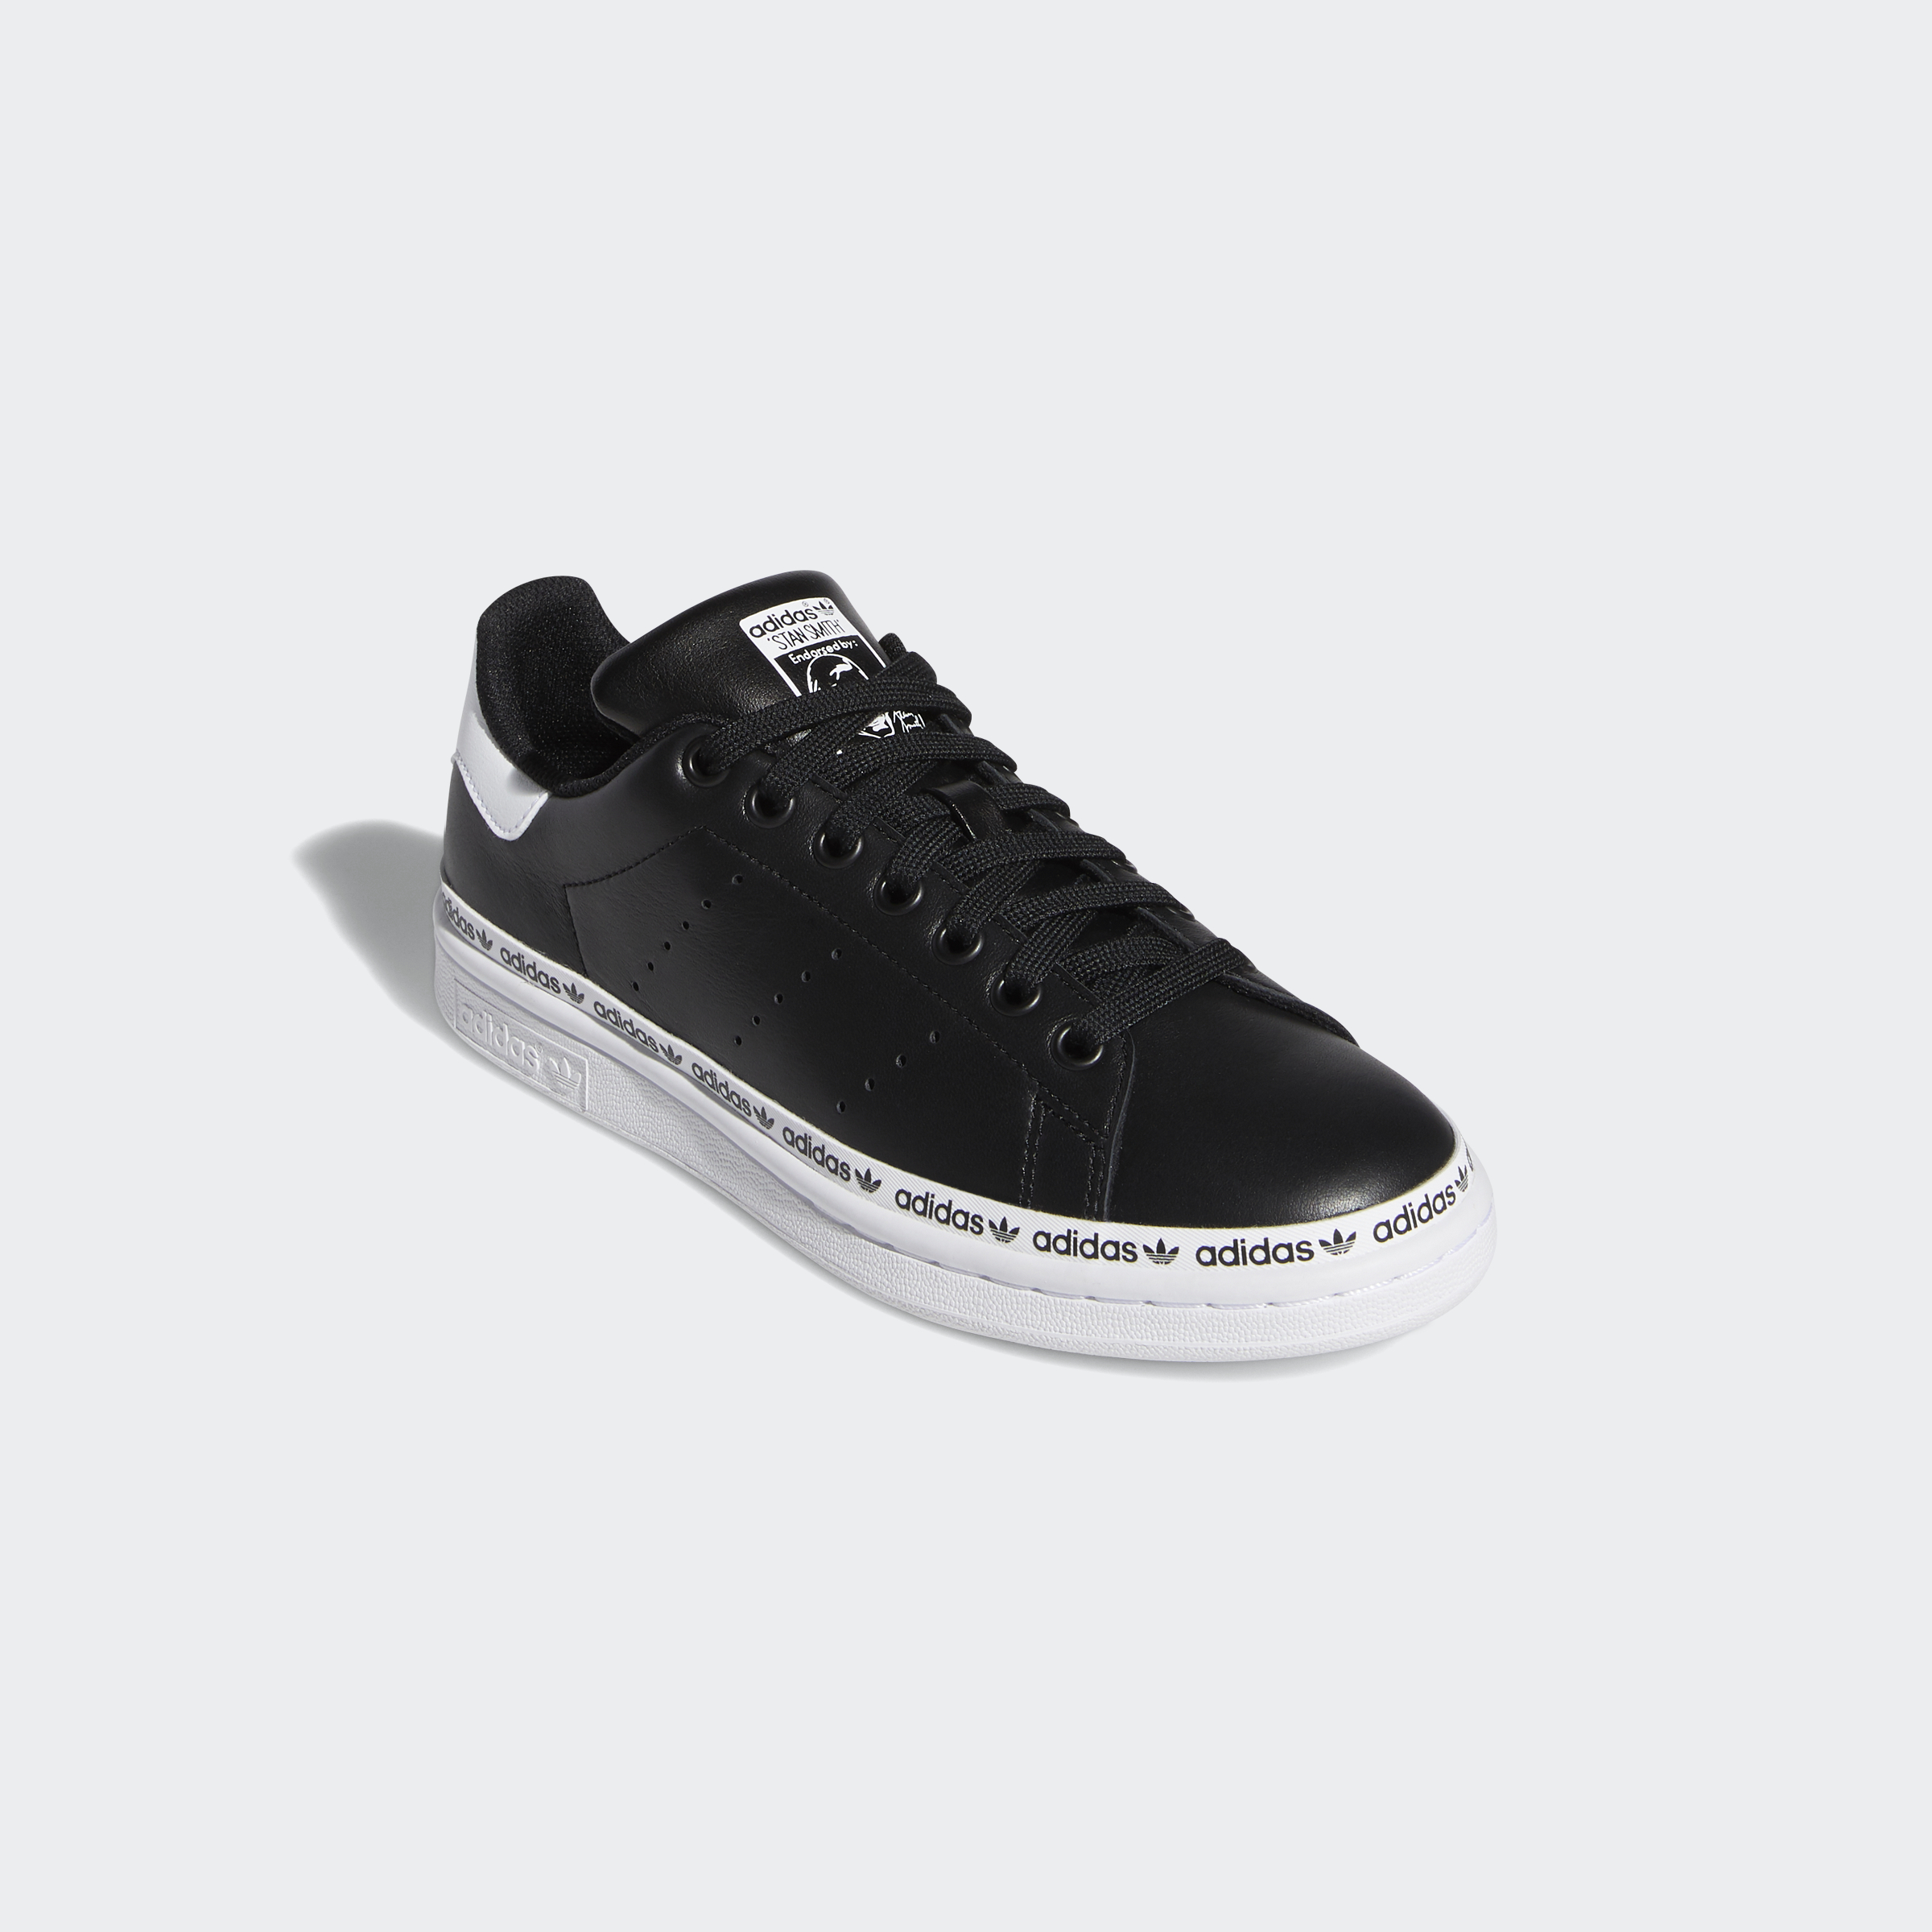 adidas-Stan-Smith-Shoes-Women-039-s-Athletic-amp-Sneakers thumbnail 15